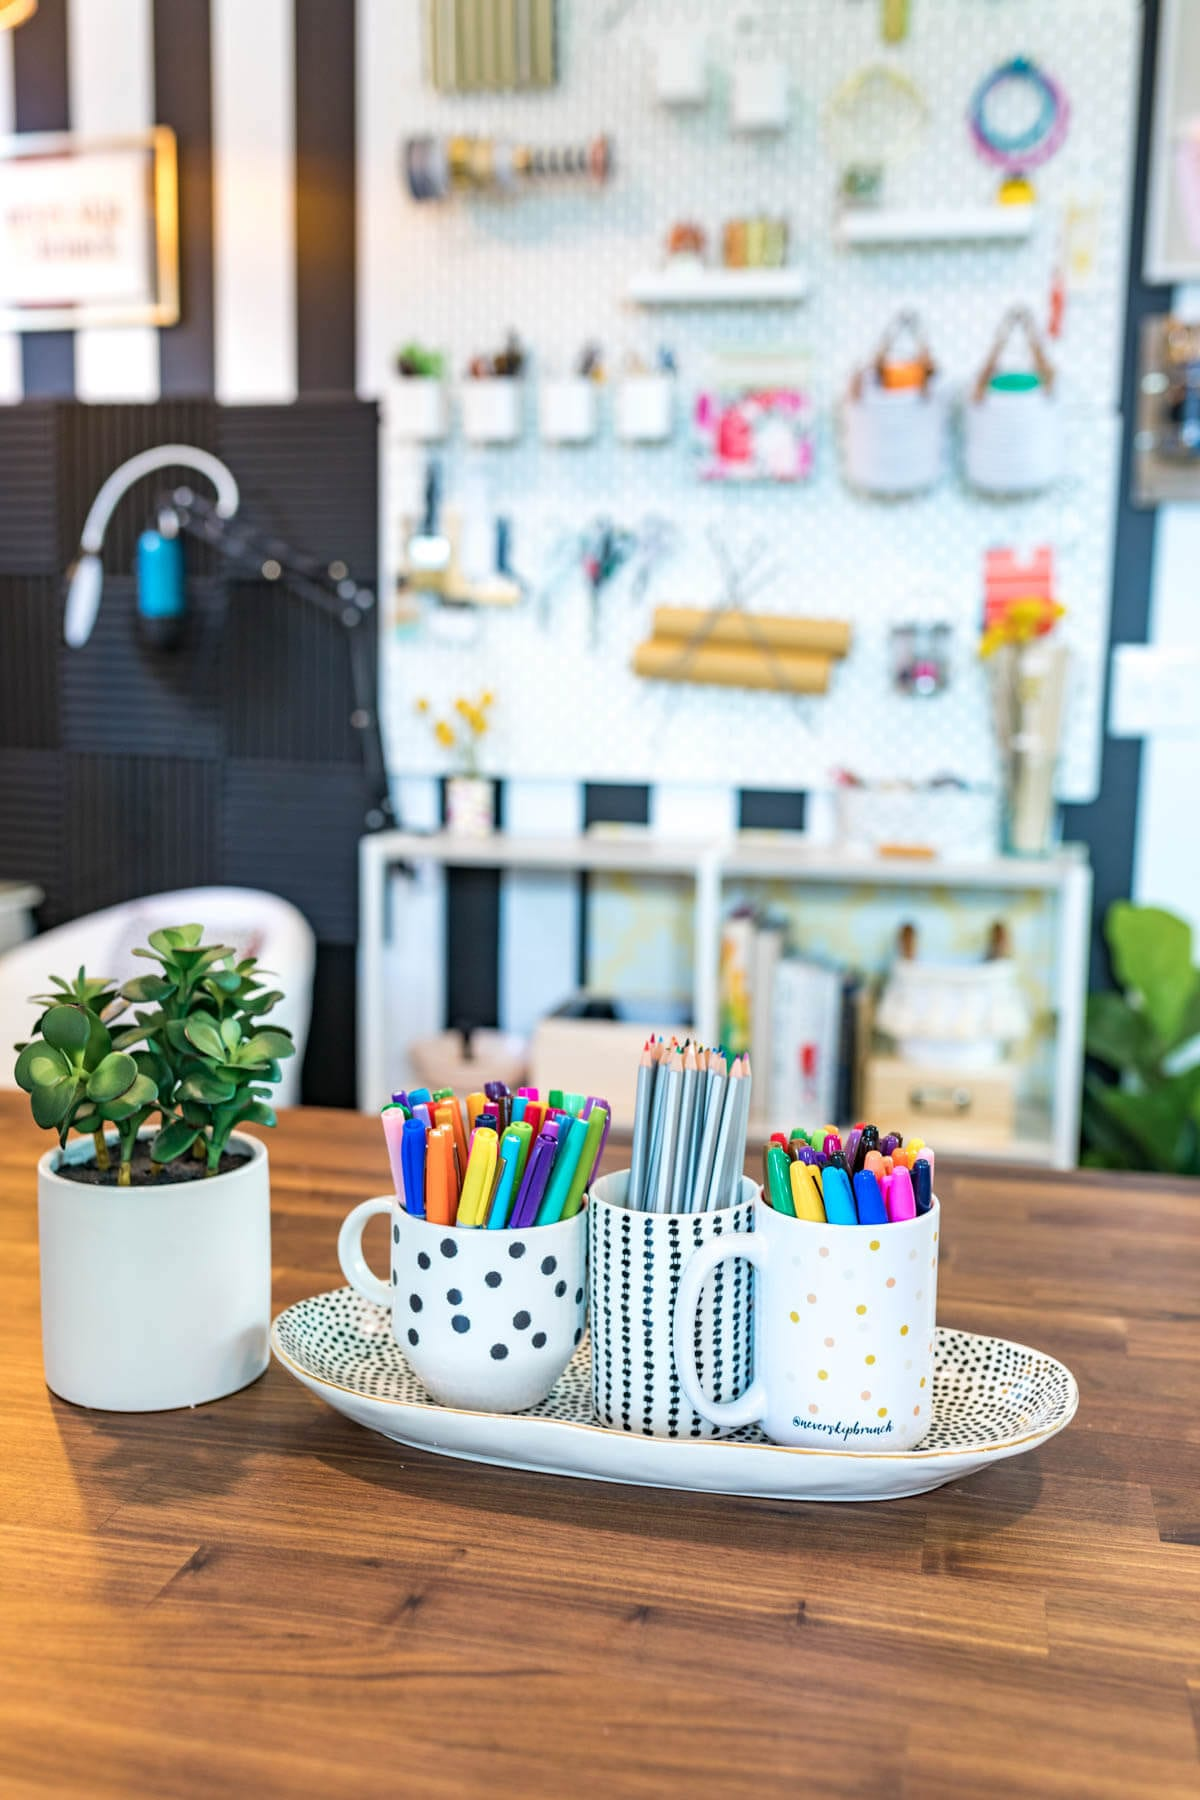 WHAT AN AMAZING SPACE! Office Reveal   Office Decor   office decorating ideas   Studio Design   office decorating ideas for women   Never Skip Brunch by Cara Newhart #home #decor #office #studio